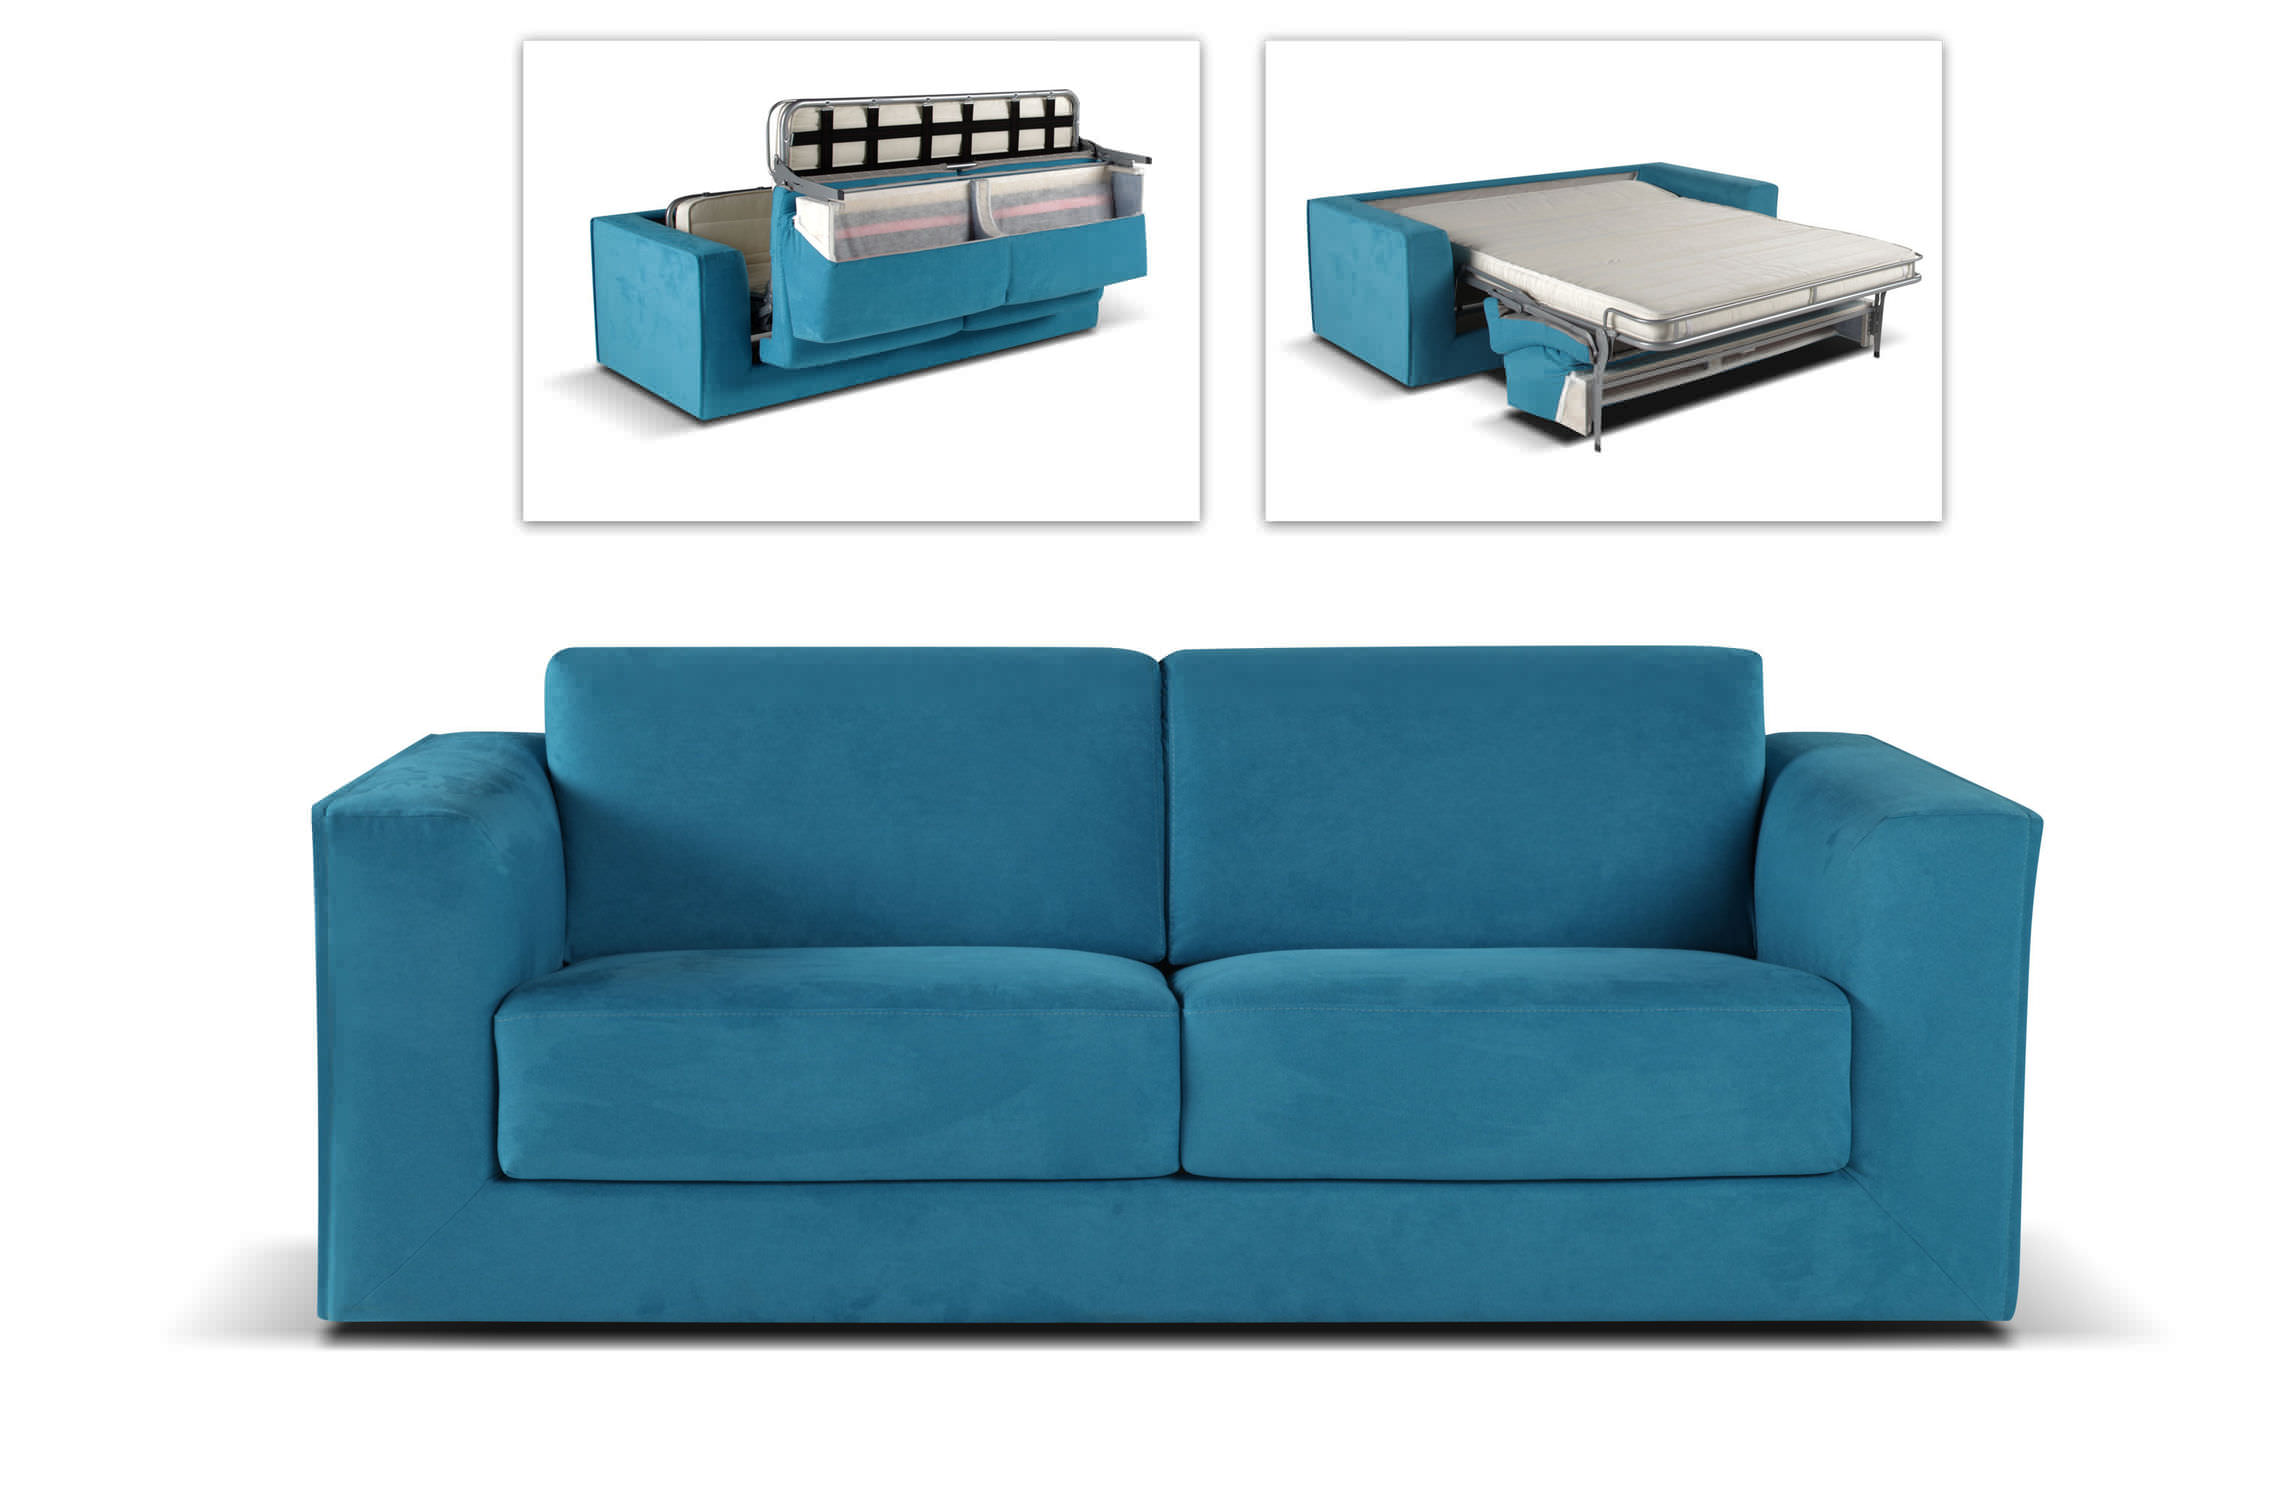 Minimize your interior with couch that turn into bed for stylish and compact furniture homesfeed Couch and bed